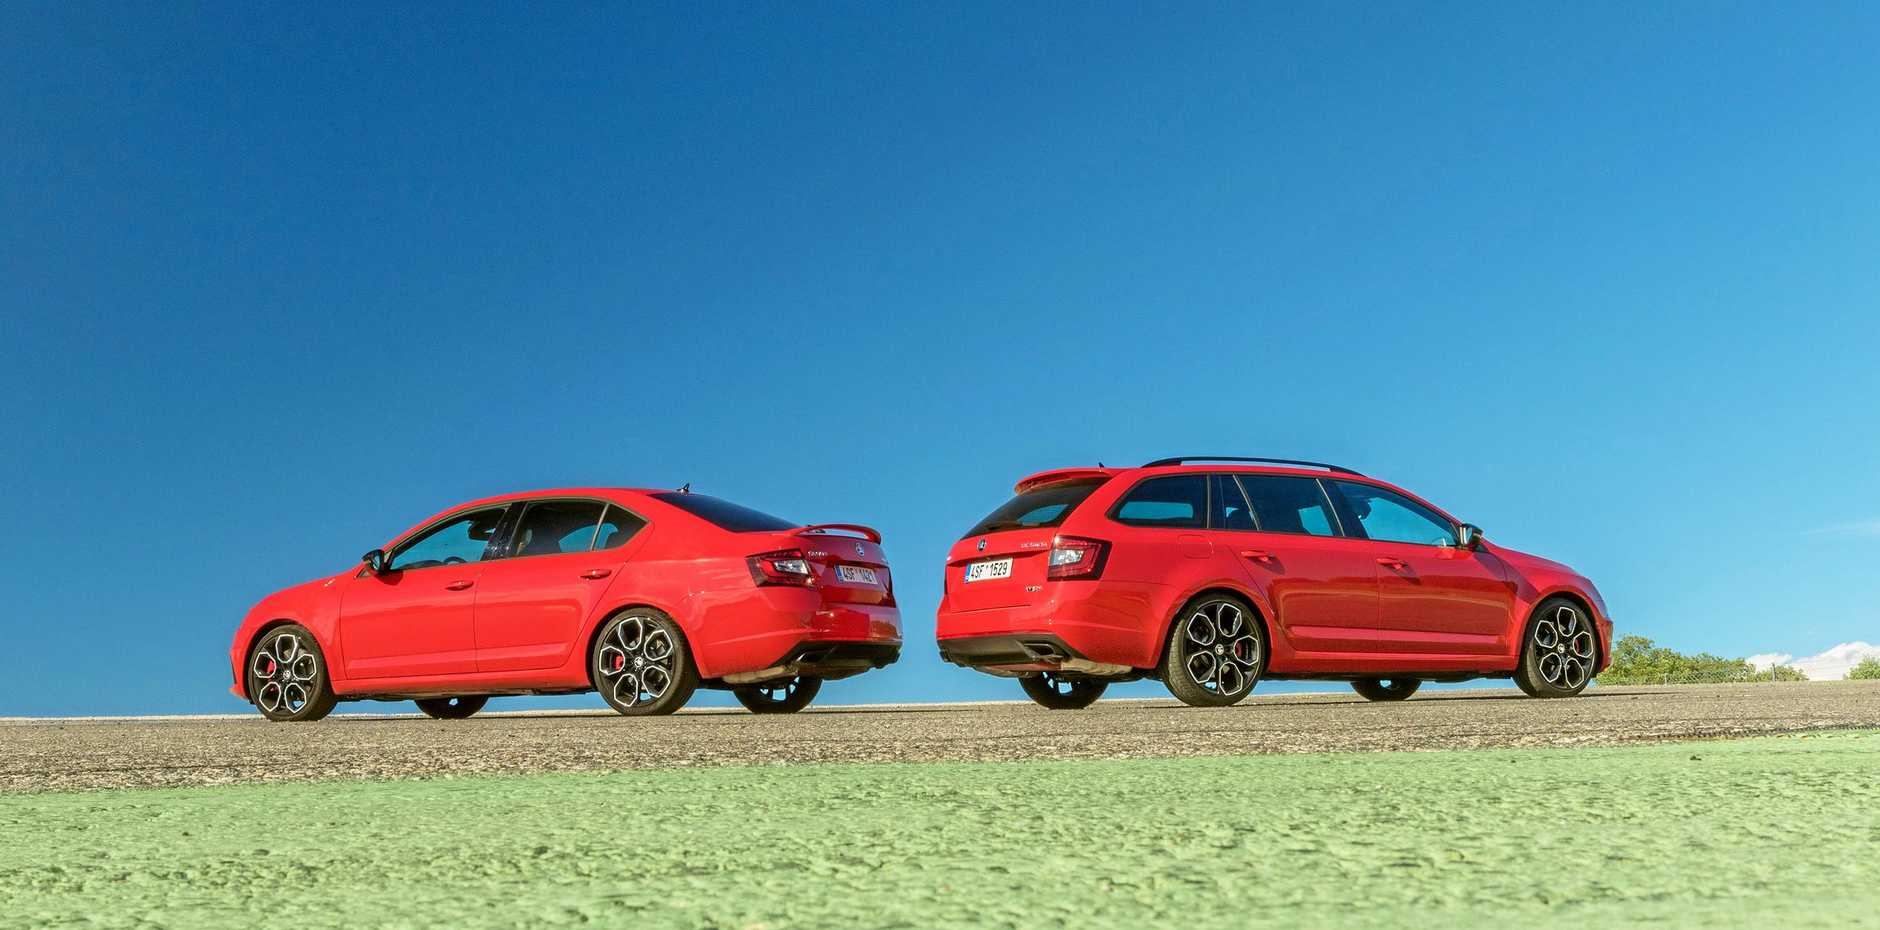 The 2018 Skoda Octavia RS 245 sedan and wagon.